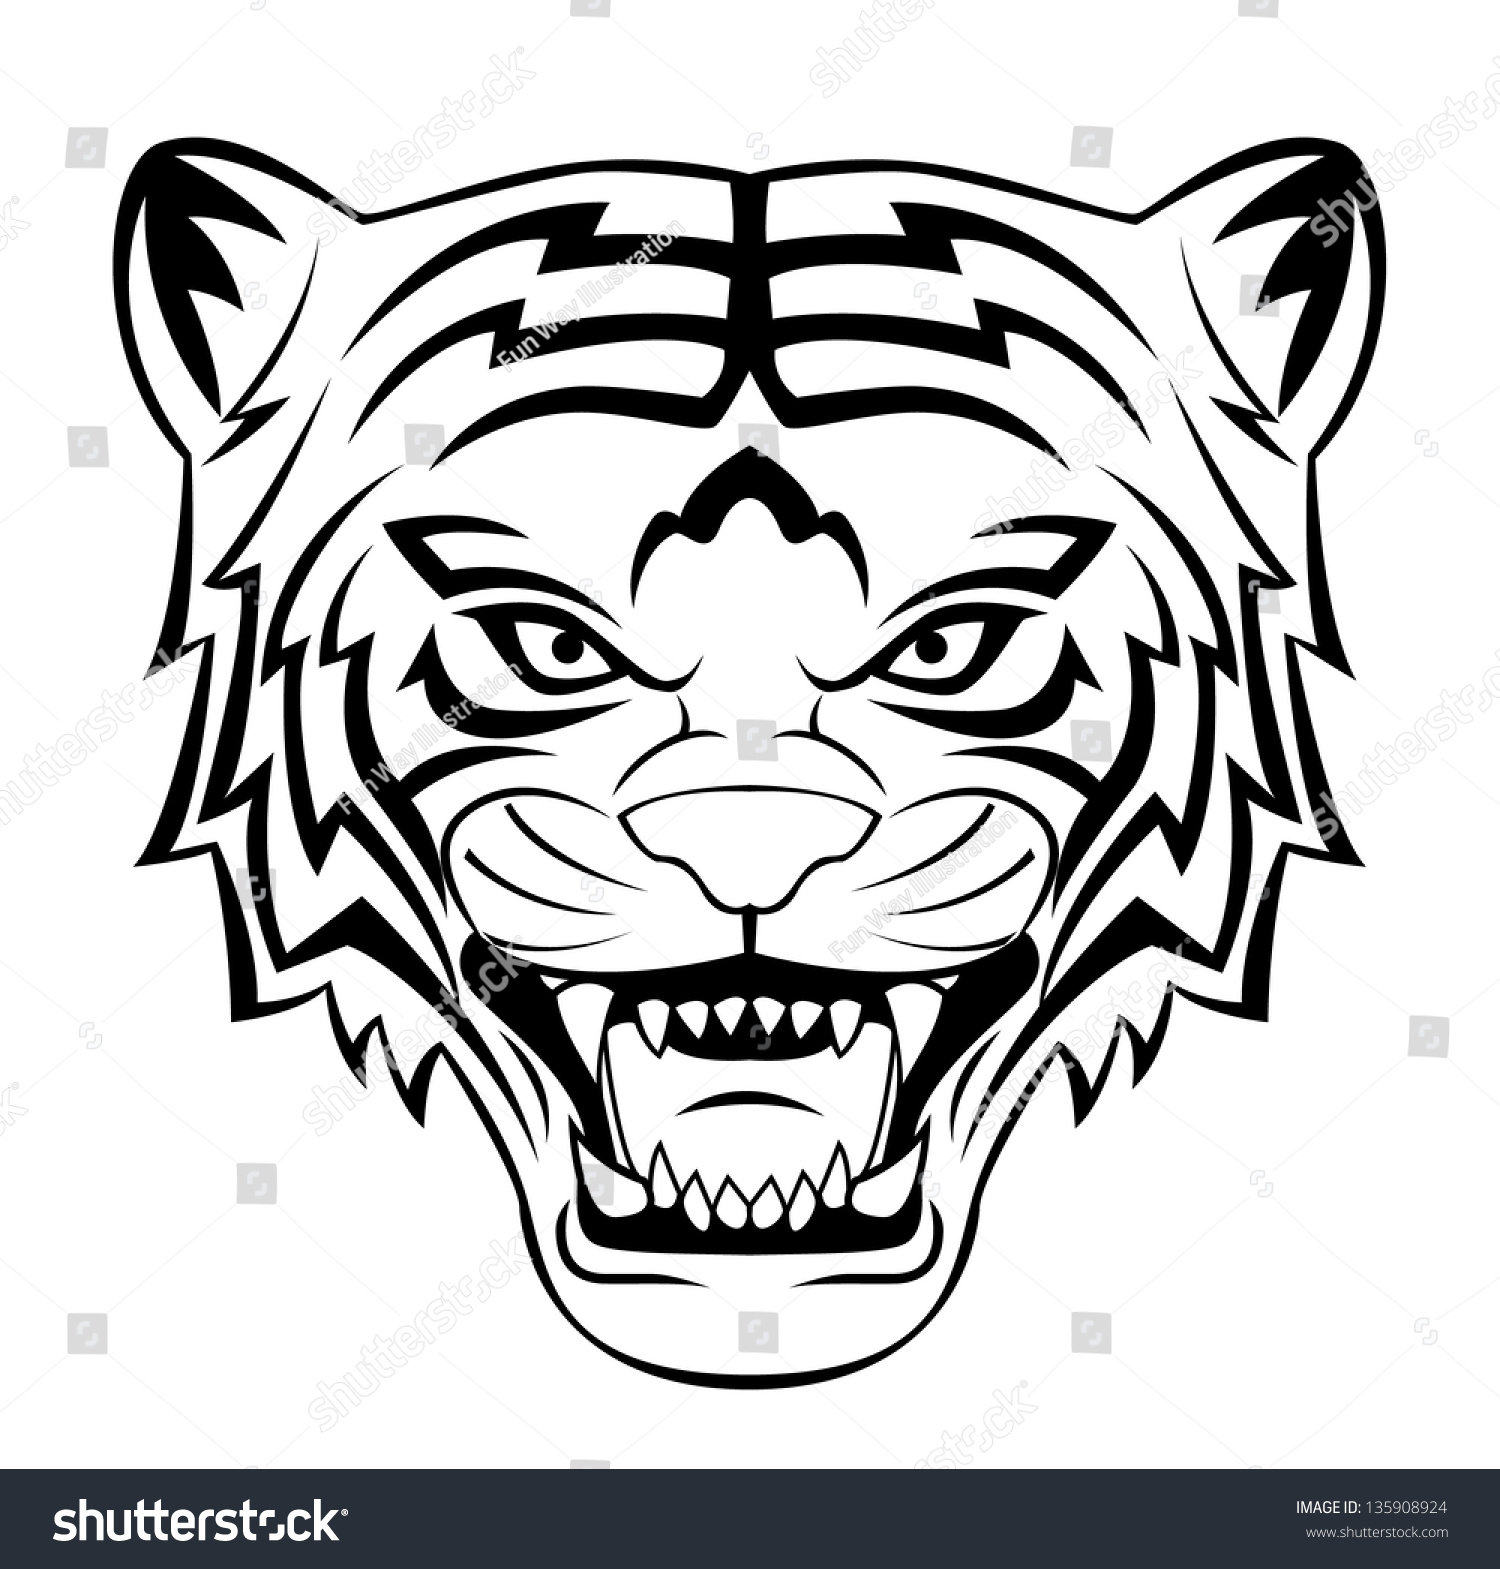 Tiger roar vector - photo#6